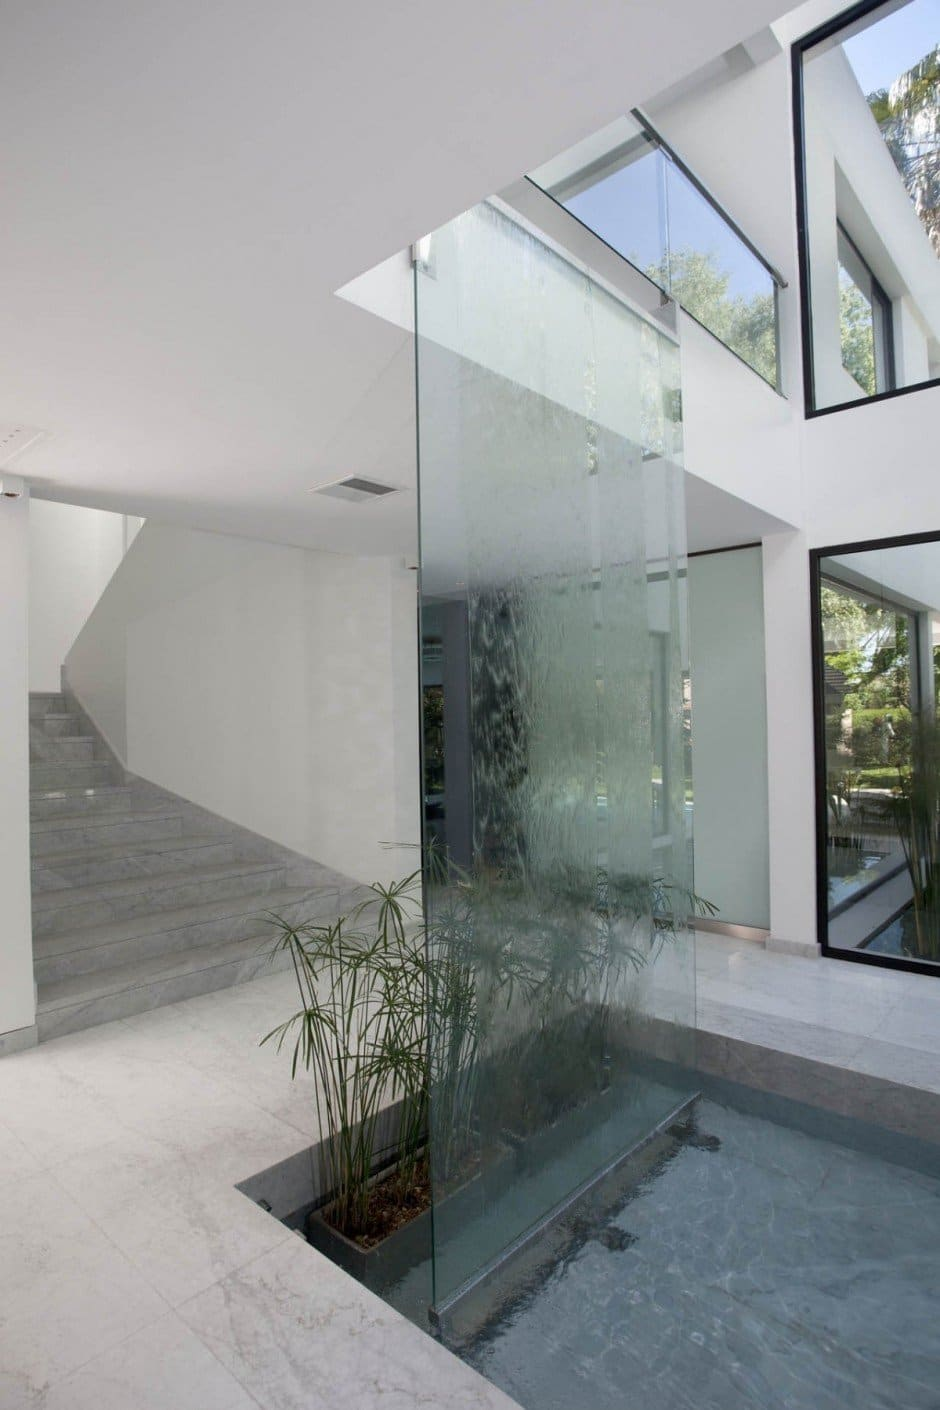 Carrara House waterfall showcasing water features by designer unknown